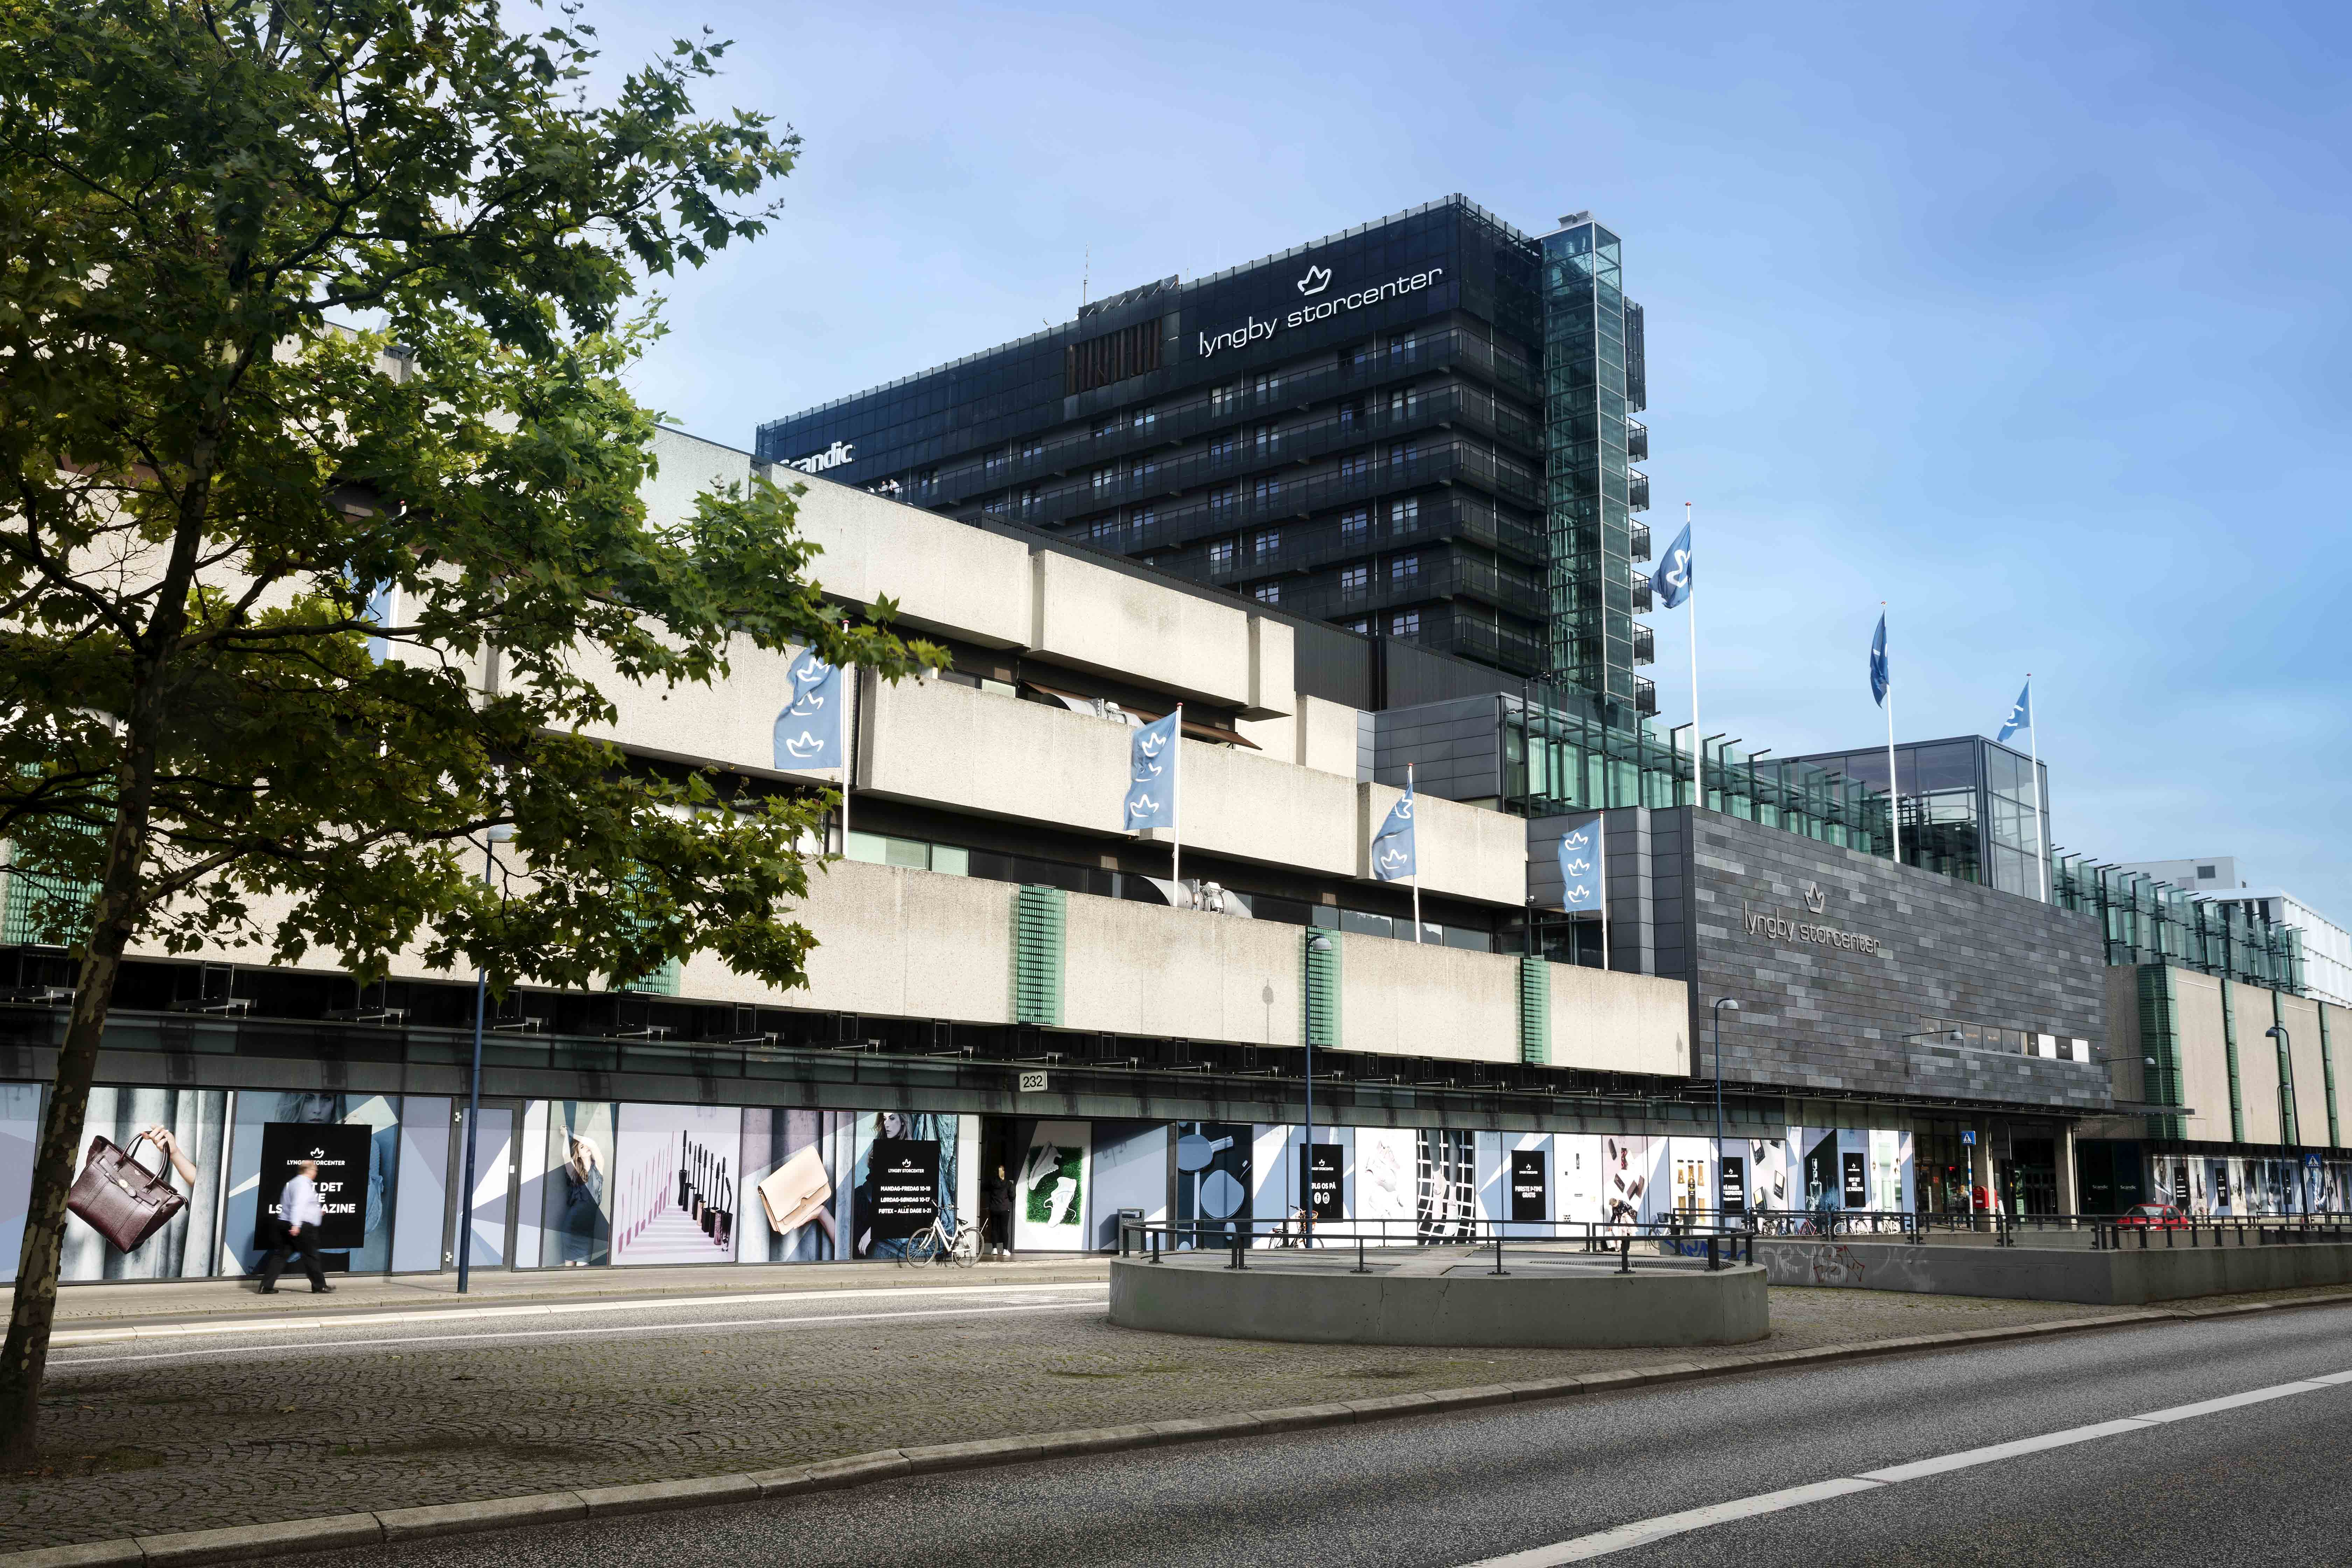 lyngby storcenter parkering